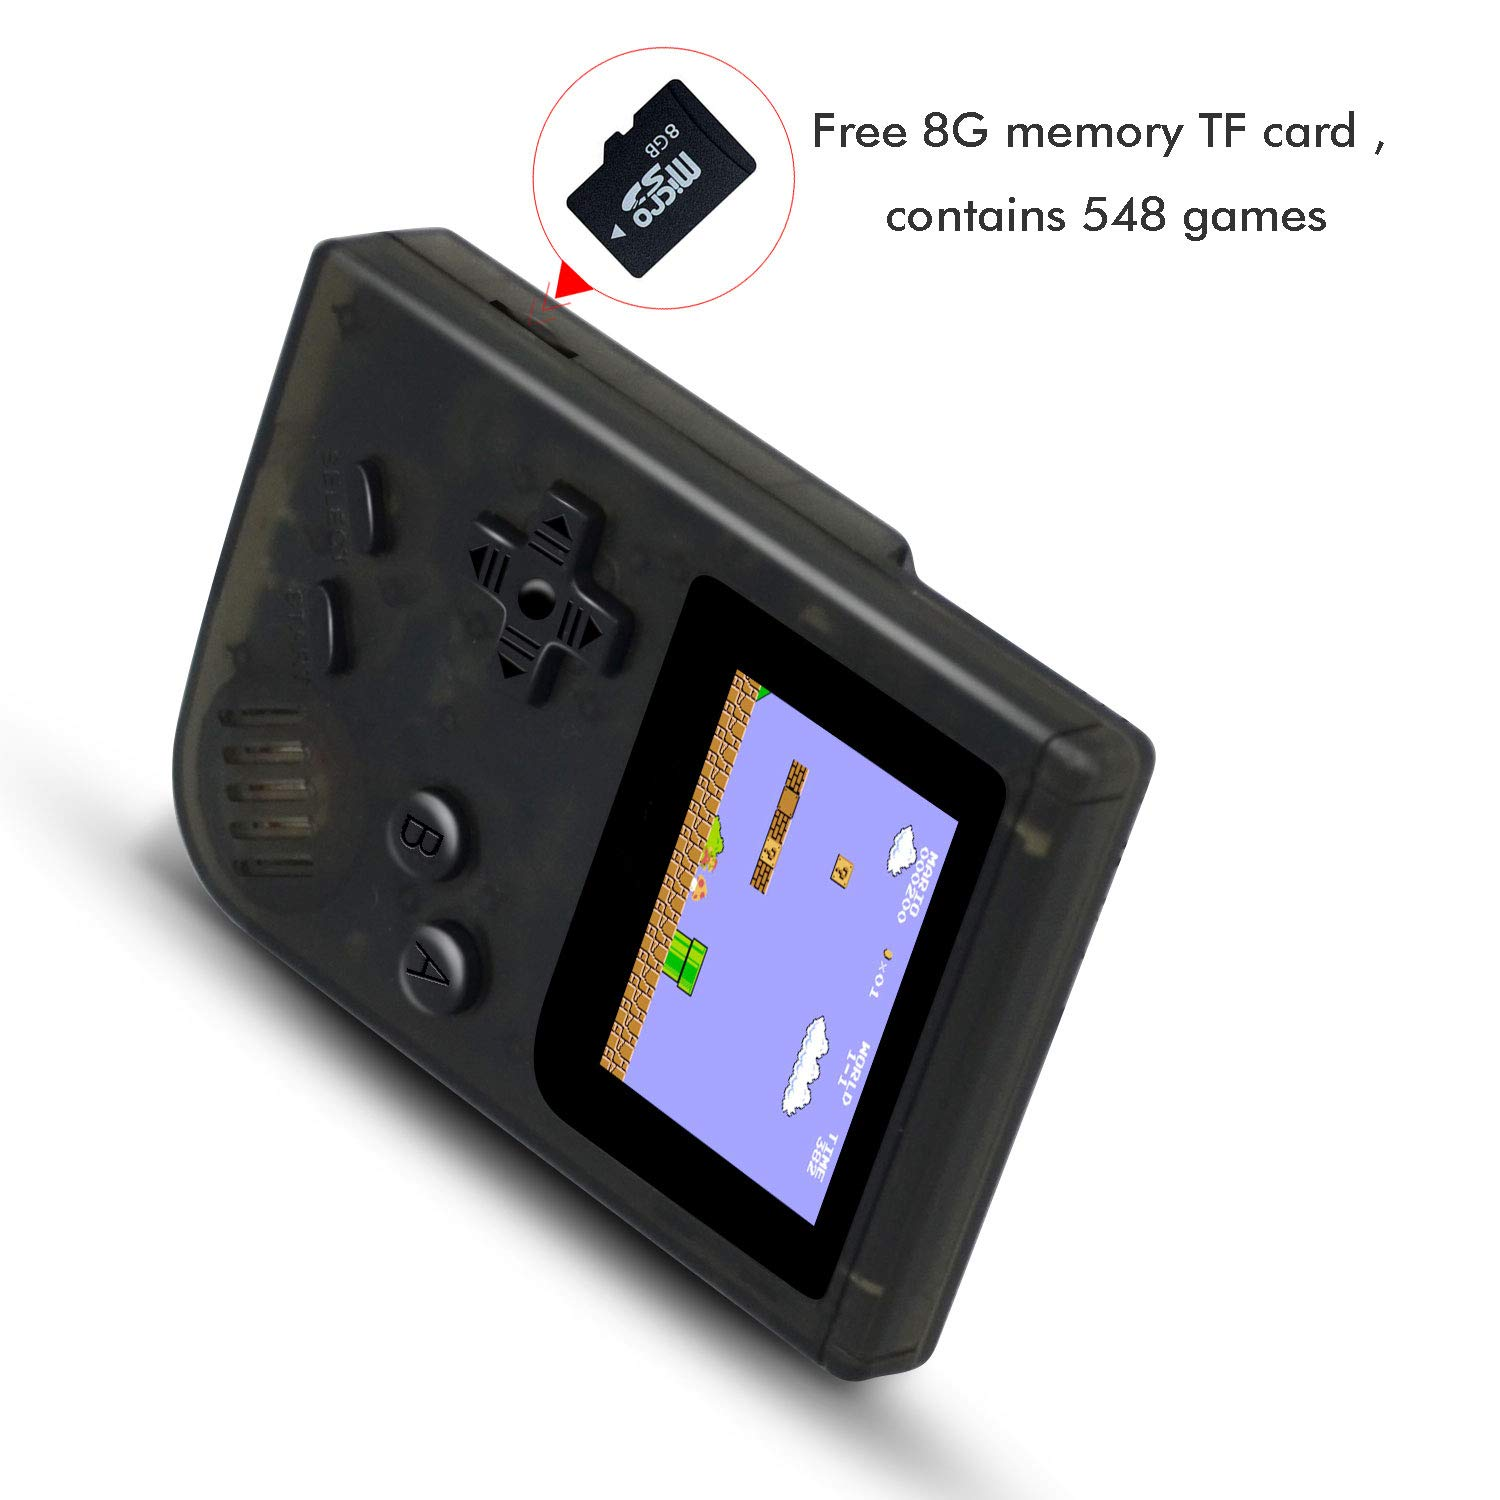 MJKJ Handheld Game Console , Retro Game Console 2 Inch HD Screen 548 Classic GBA Games , Birthday Presents for Children - Transparent Black by MJKJ (Image #4)